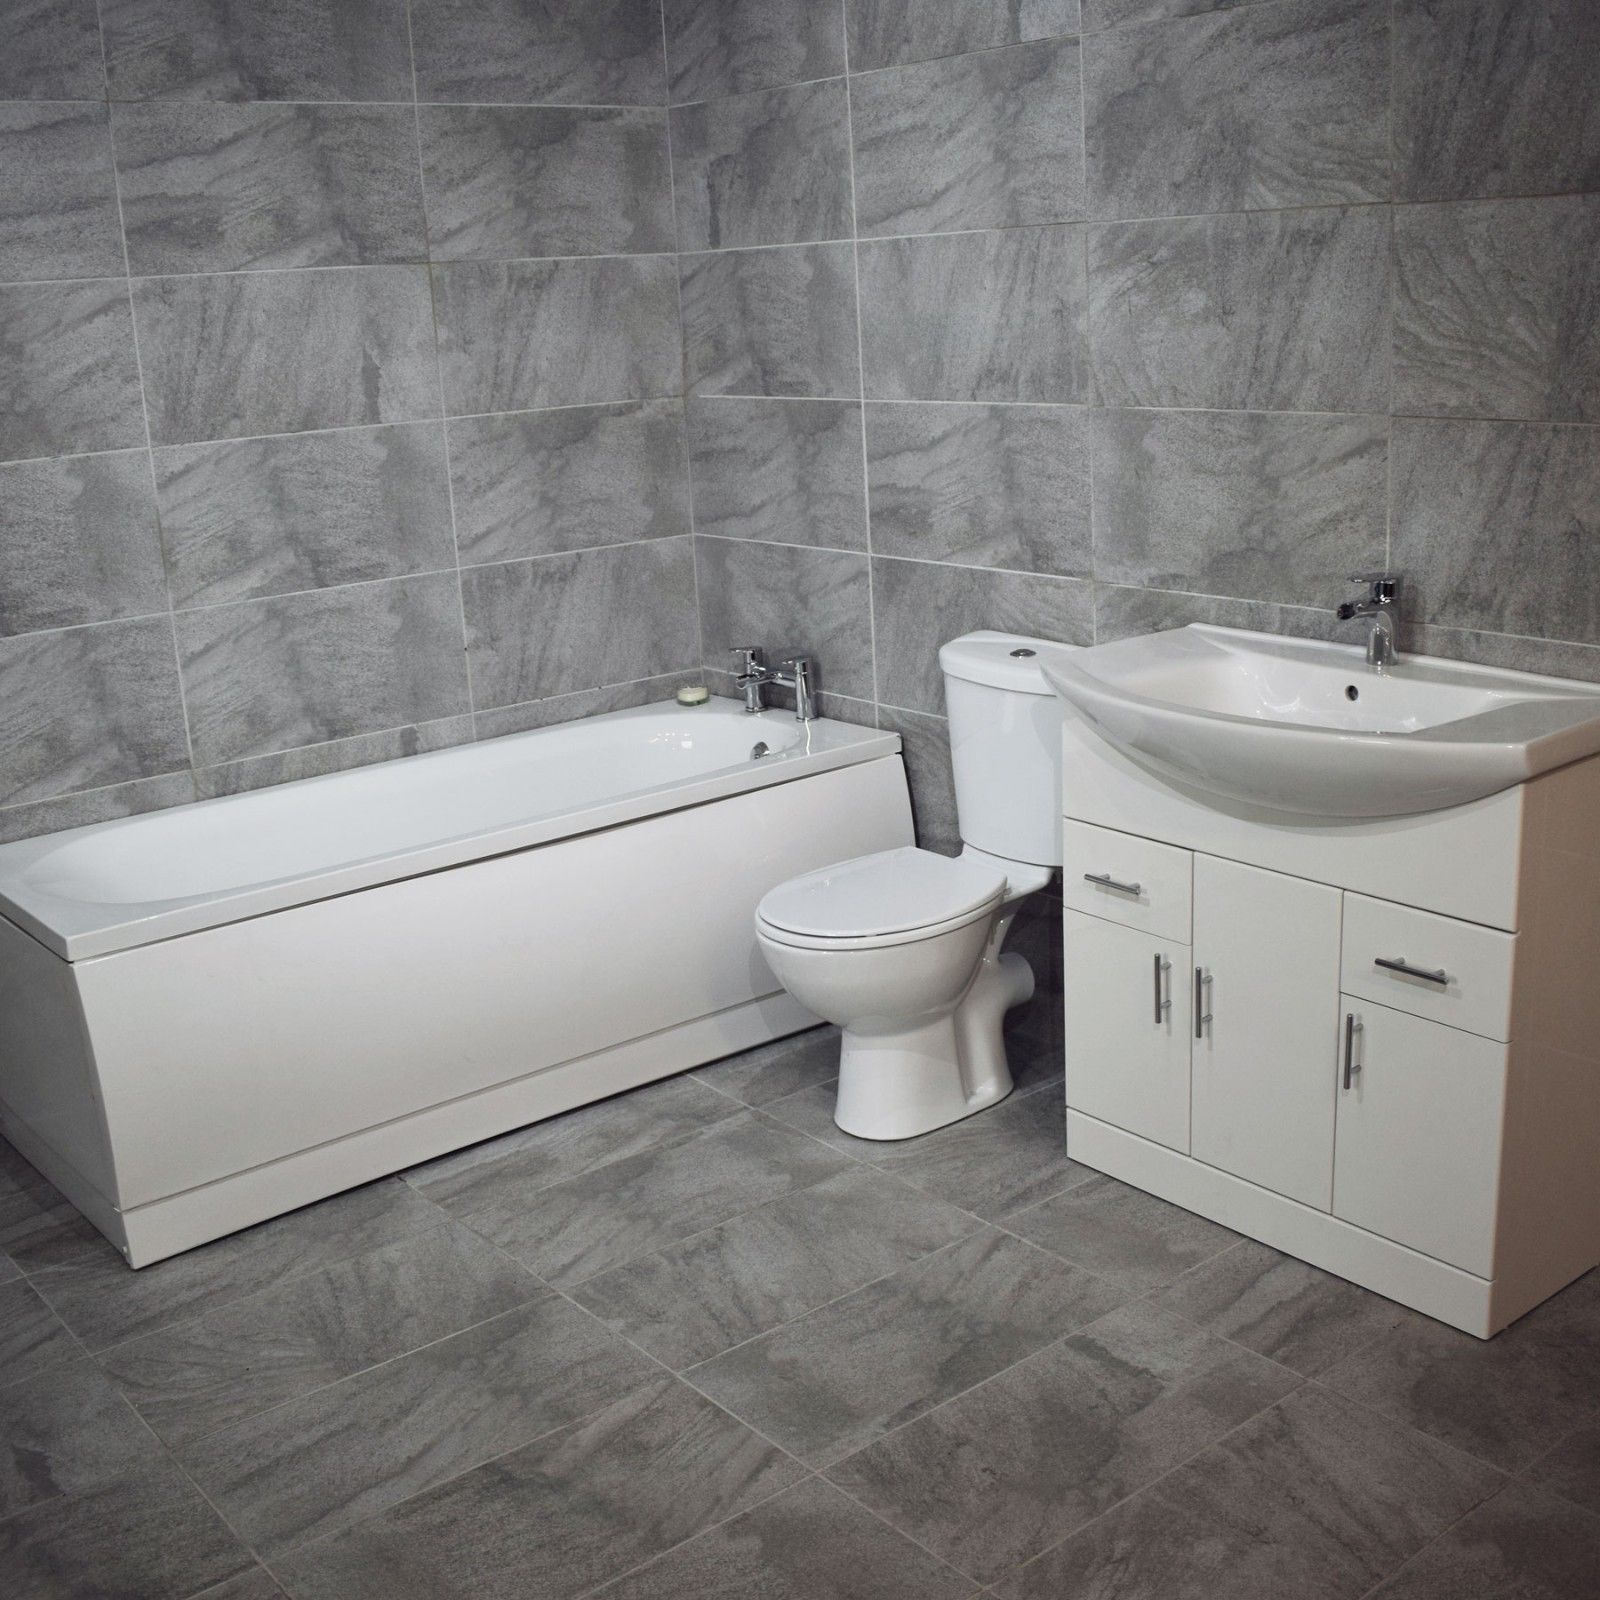 Onega Modern Bathroom Suite Vanity Sink Basin Unit Choice of Bath ...